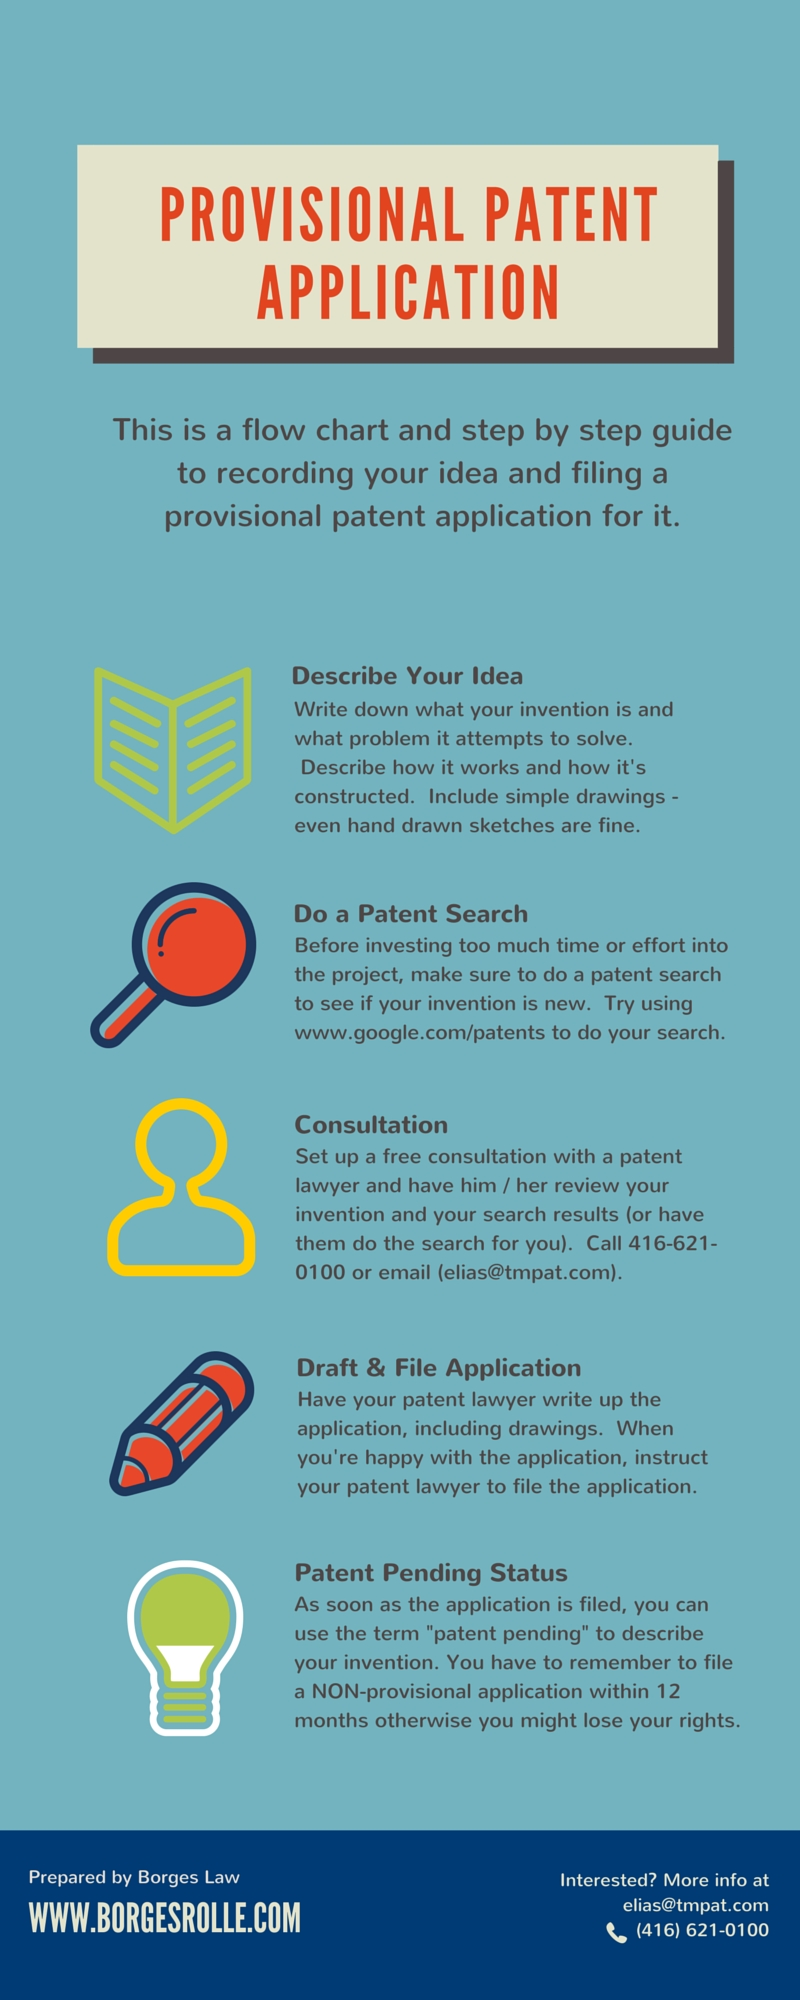 10 Gorgeous How To Get A Patent For An Idea provisional patent application how to file infographic 7 2020